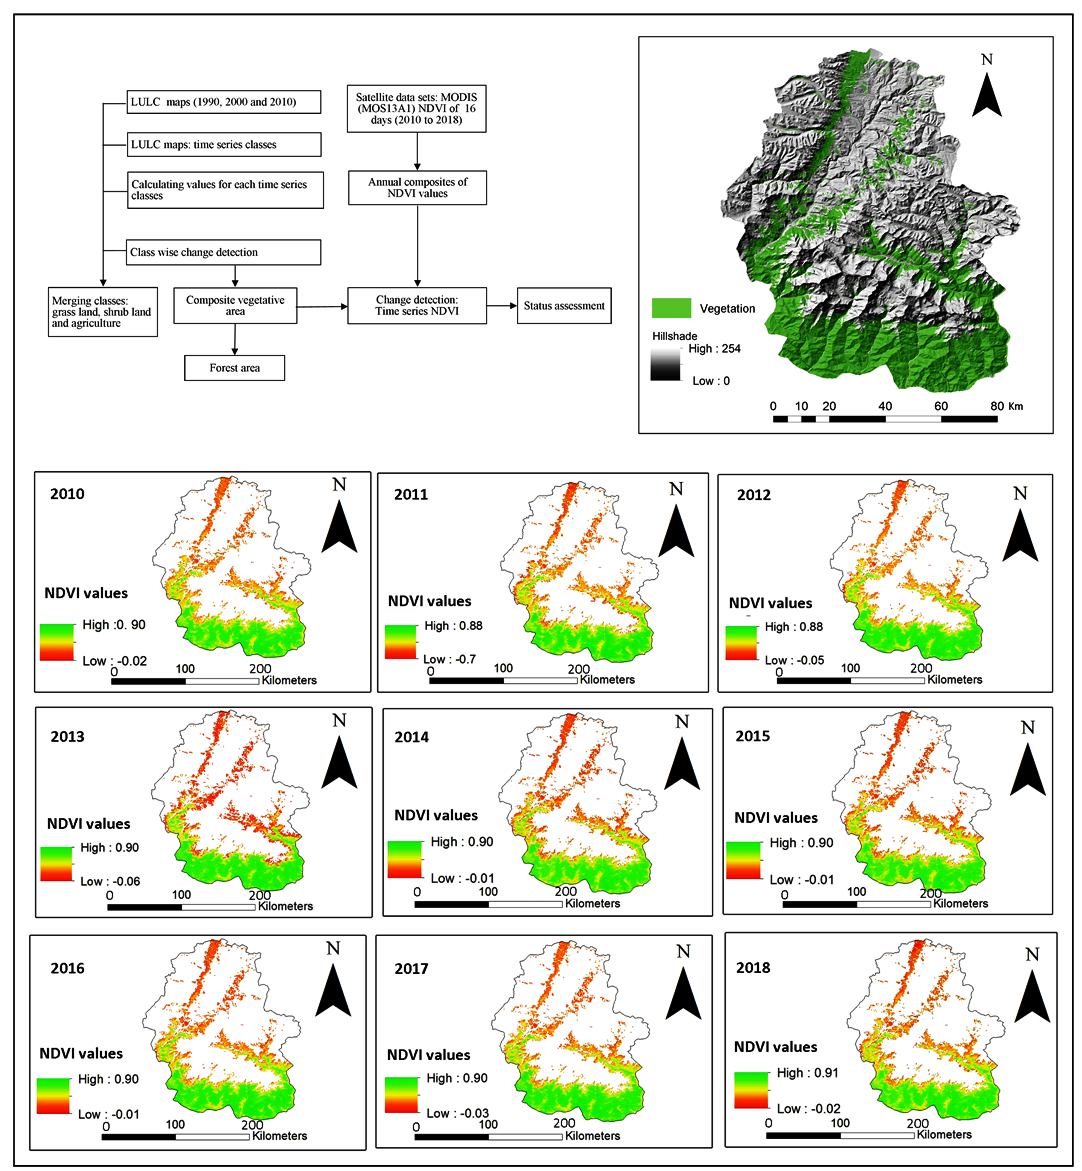 Analysis of Land Use Land Cover in Annapurna Conservation Area in Gandaki Province Nepal using Vegetation Index and Land Use Land Cover Datasets